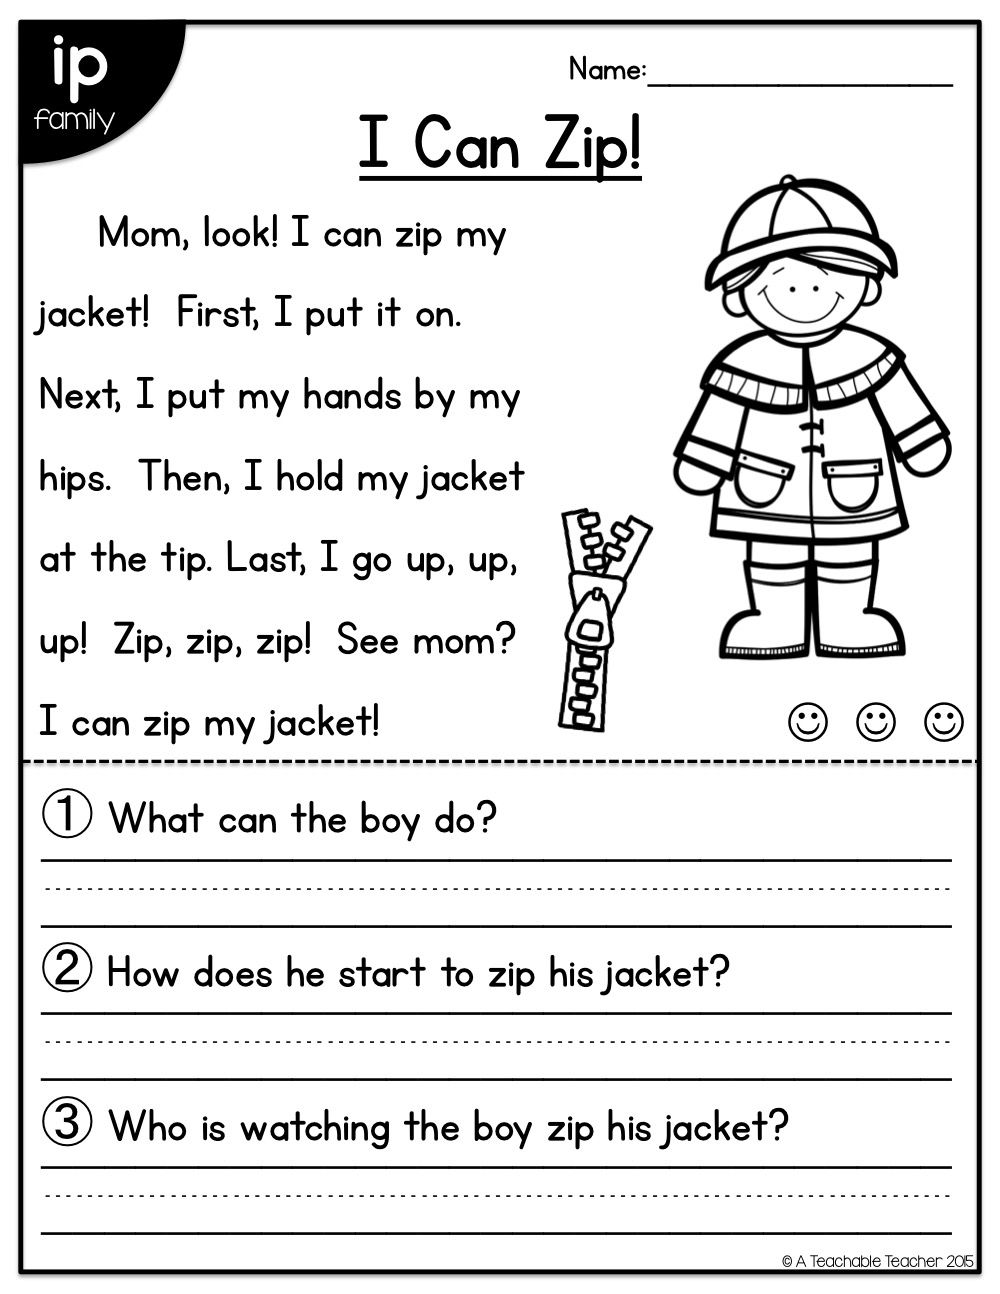 Worksheet 5th Grade Short Reading Passages 1st grade short stories laptuoso with comprehension questions laptuoso